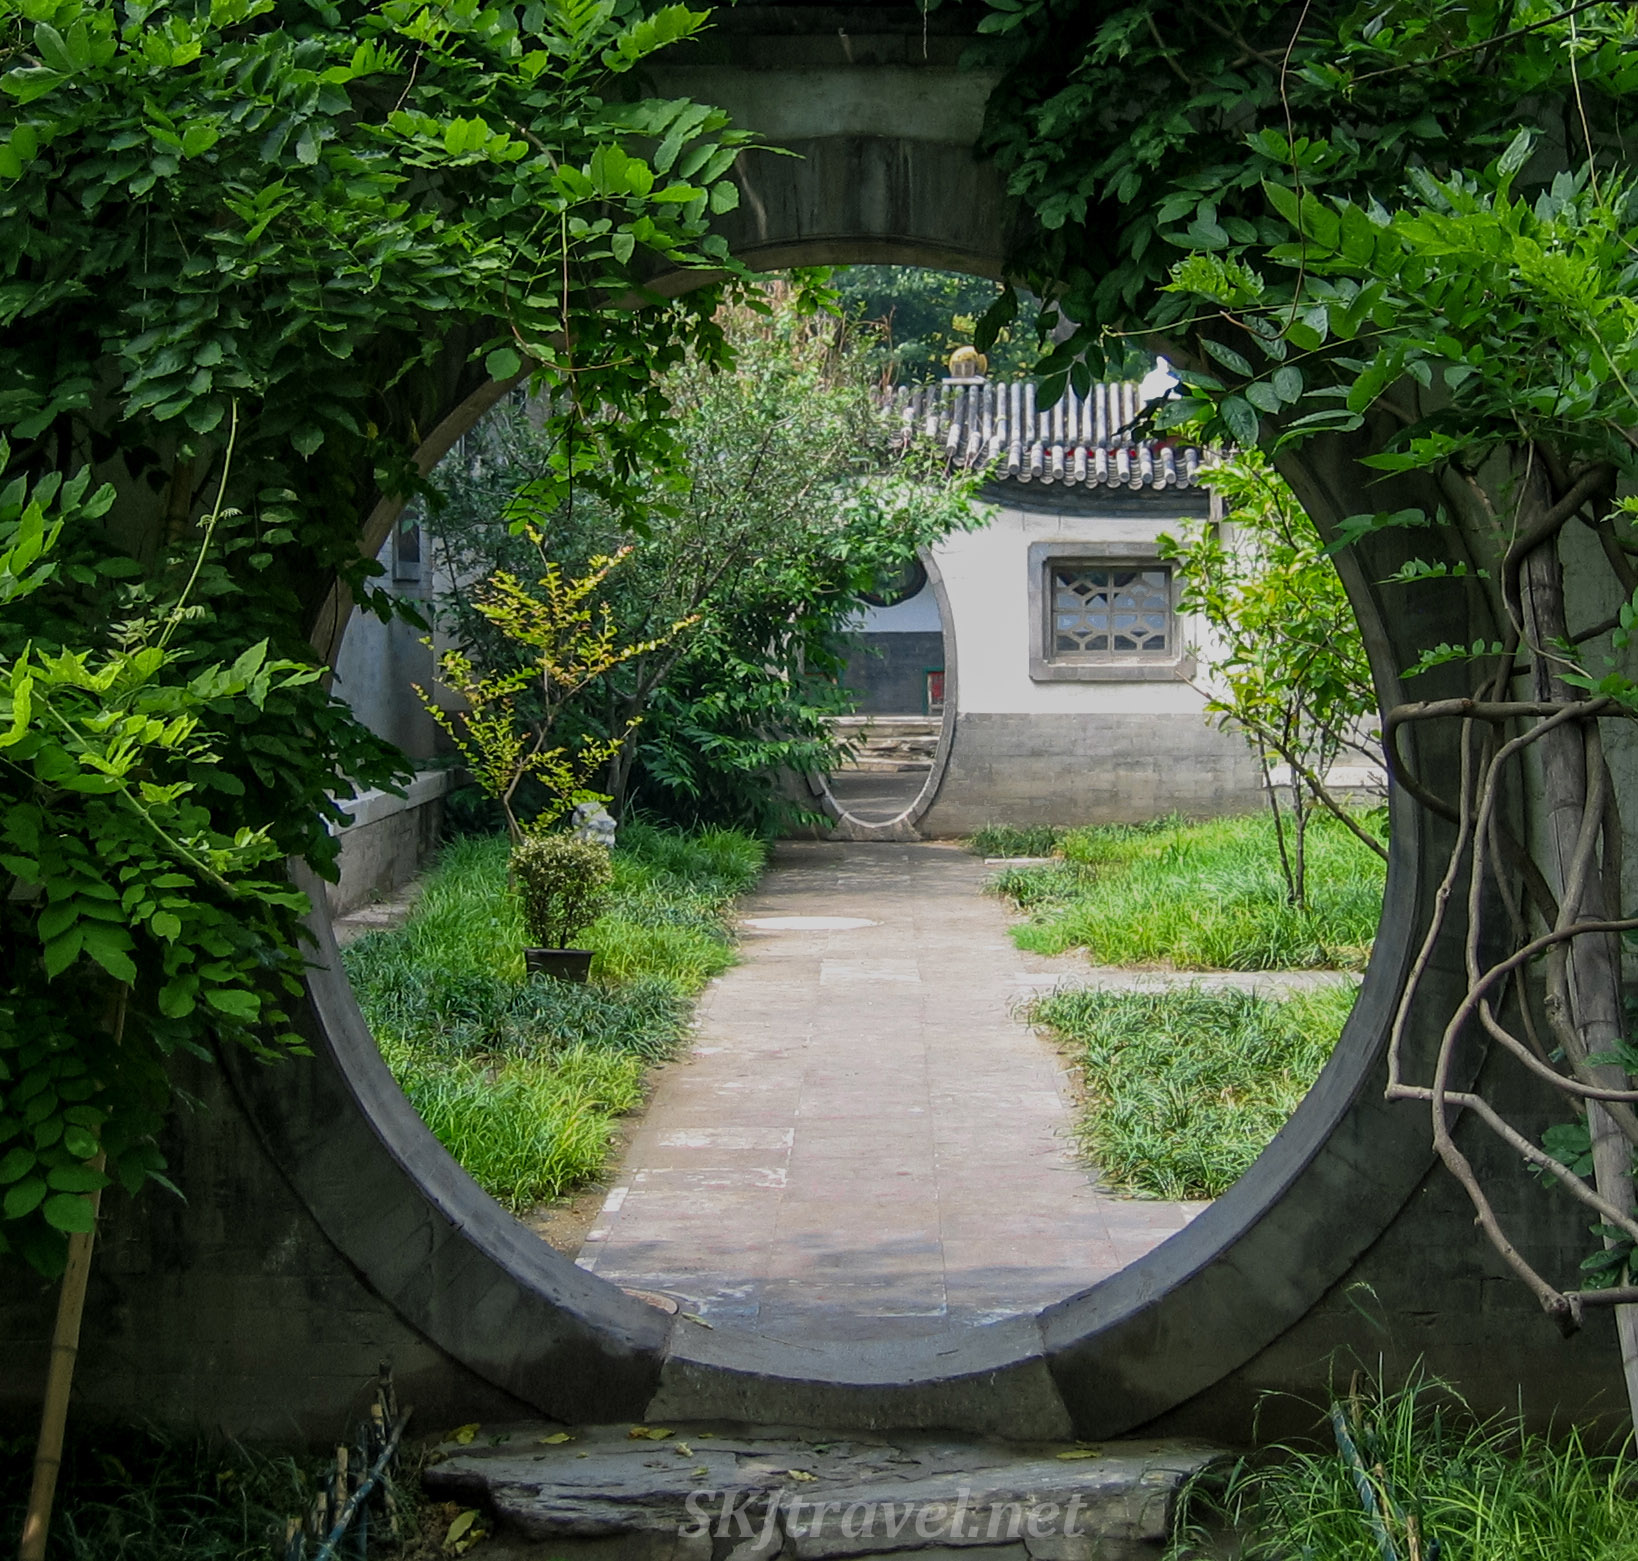 Rounded and oval doorways in a courtyard at Prince Gong's Palace, Beijing, China.